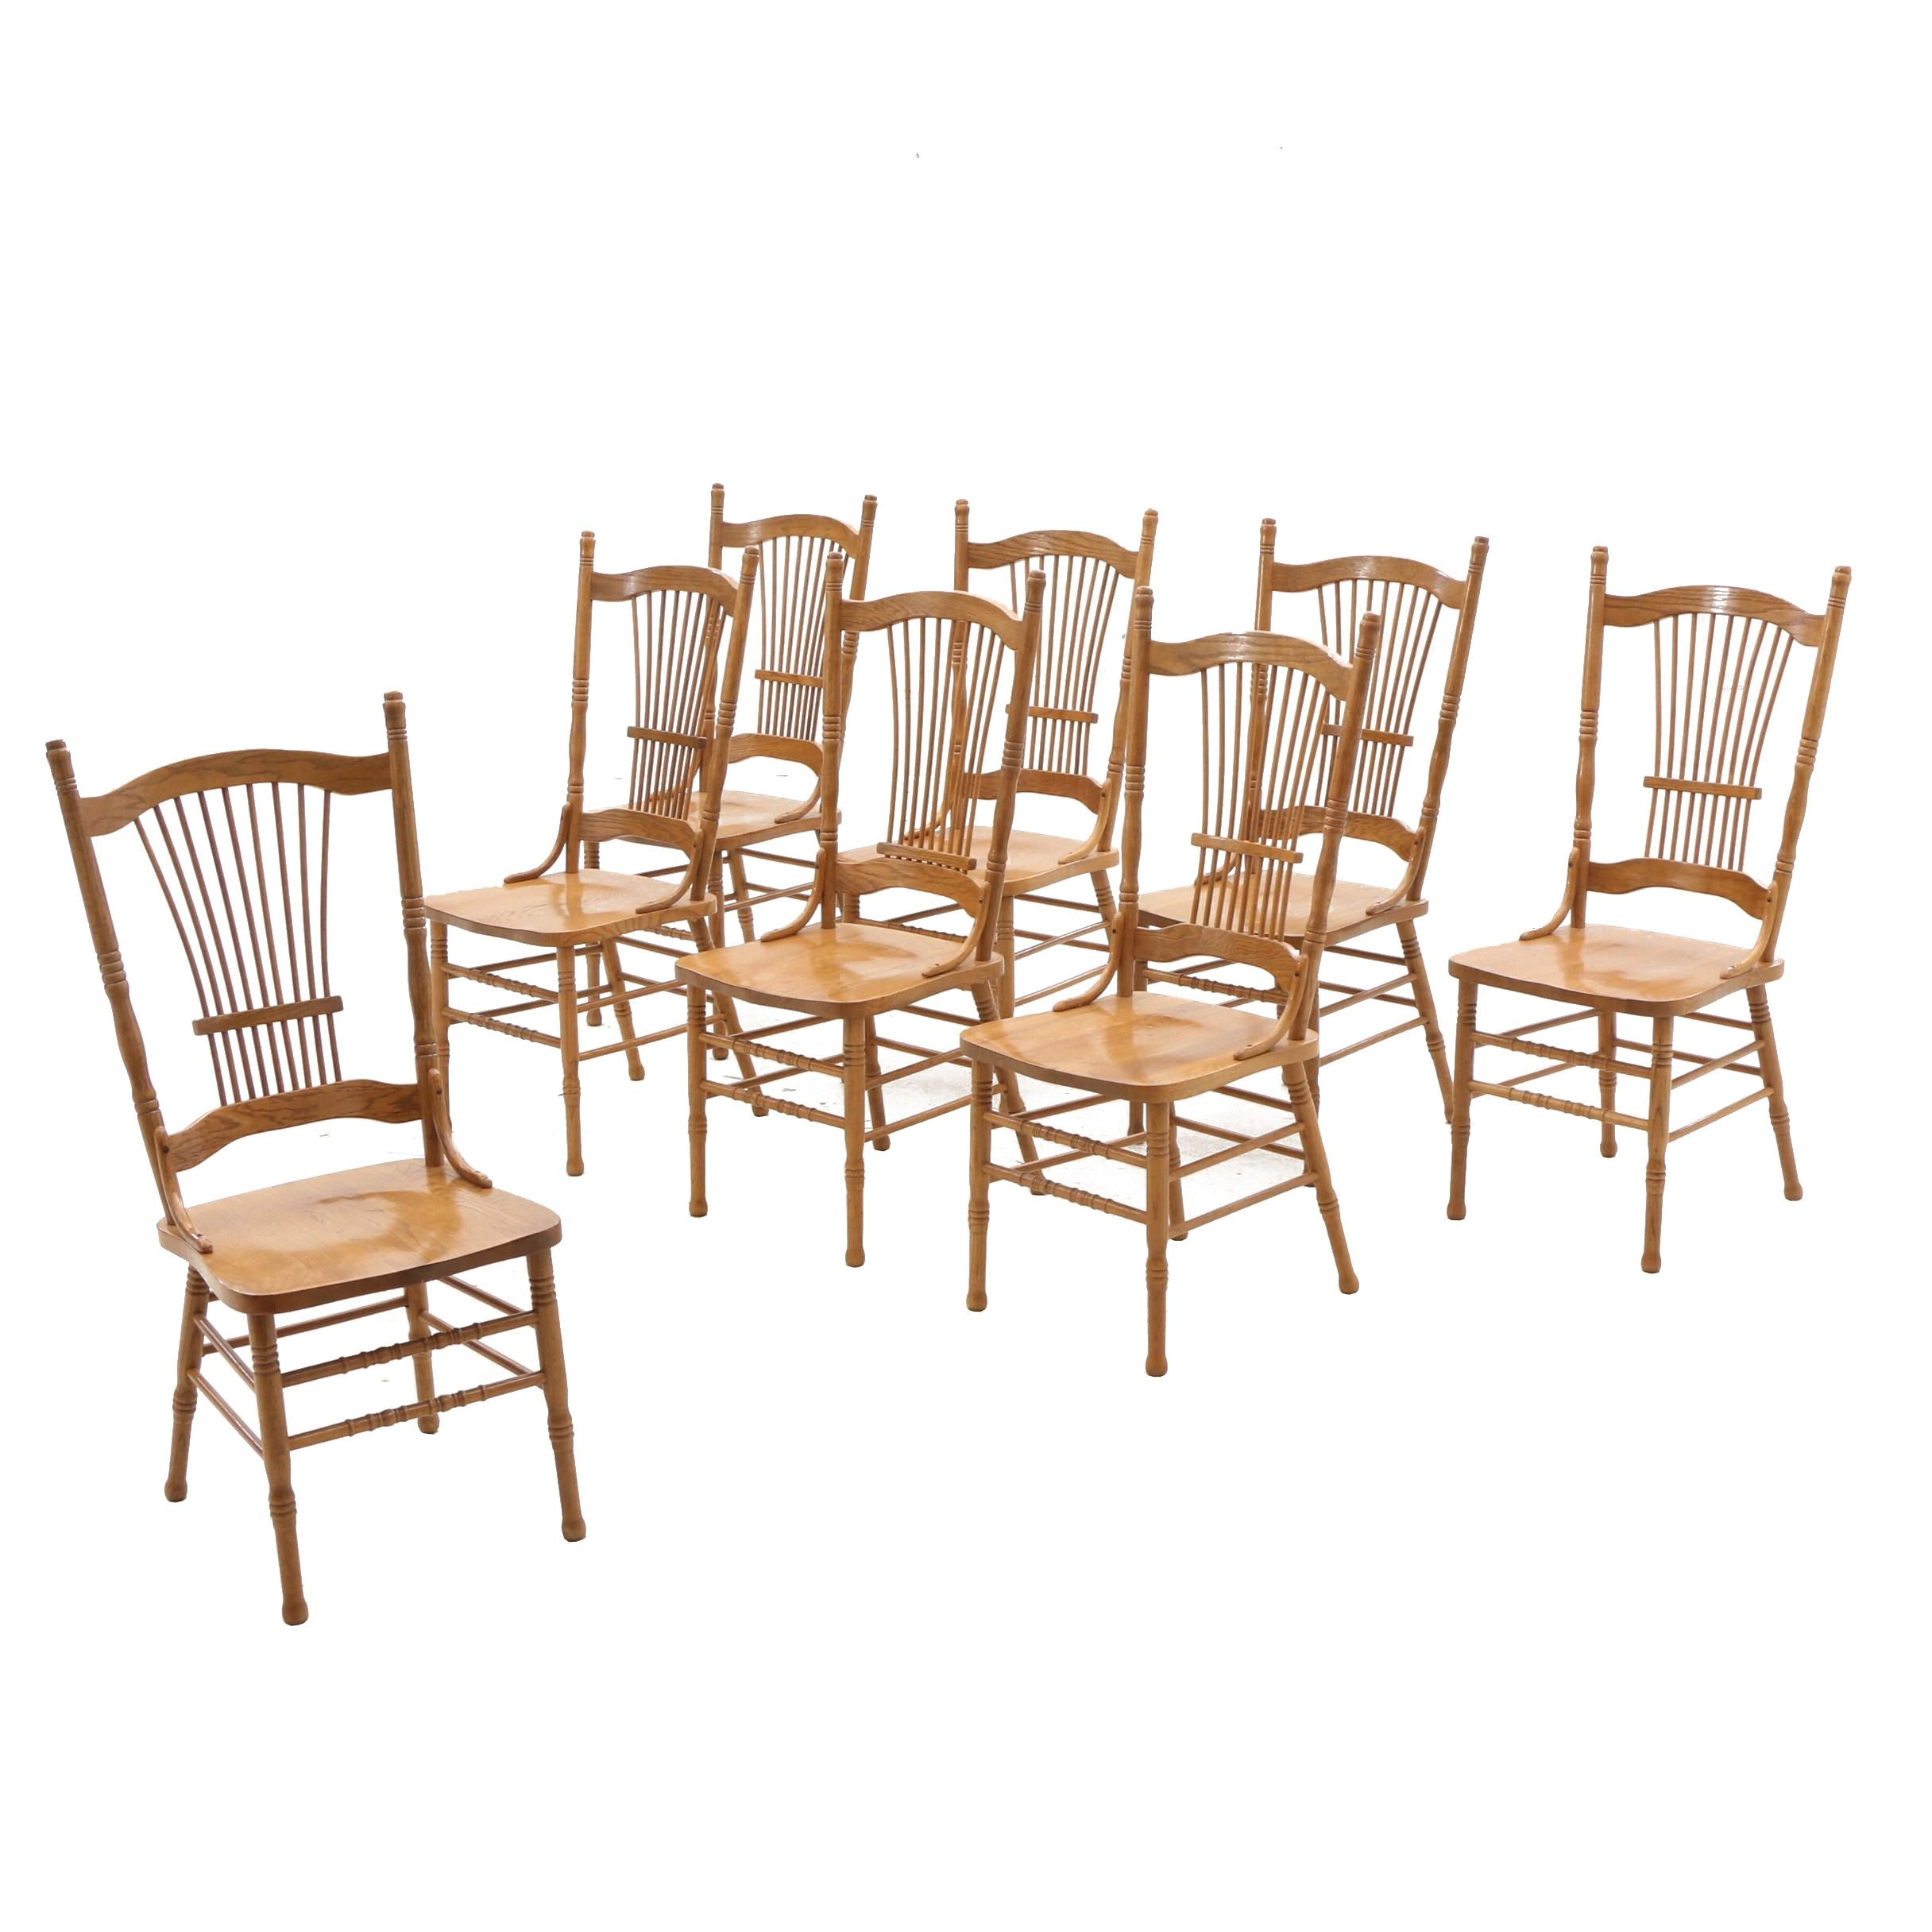 Eight Oak Dining Chairs